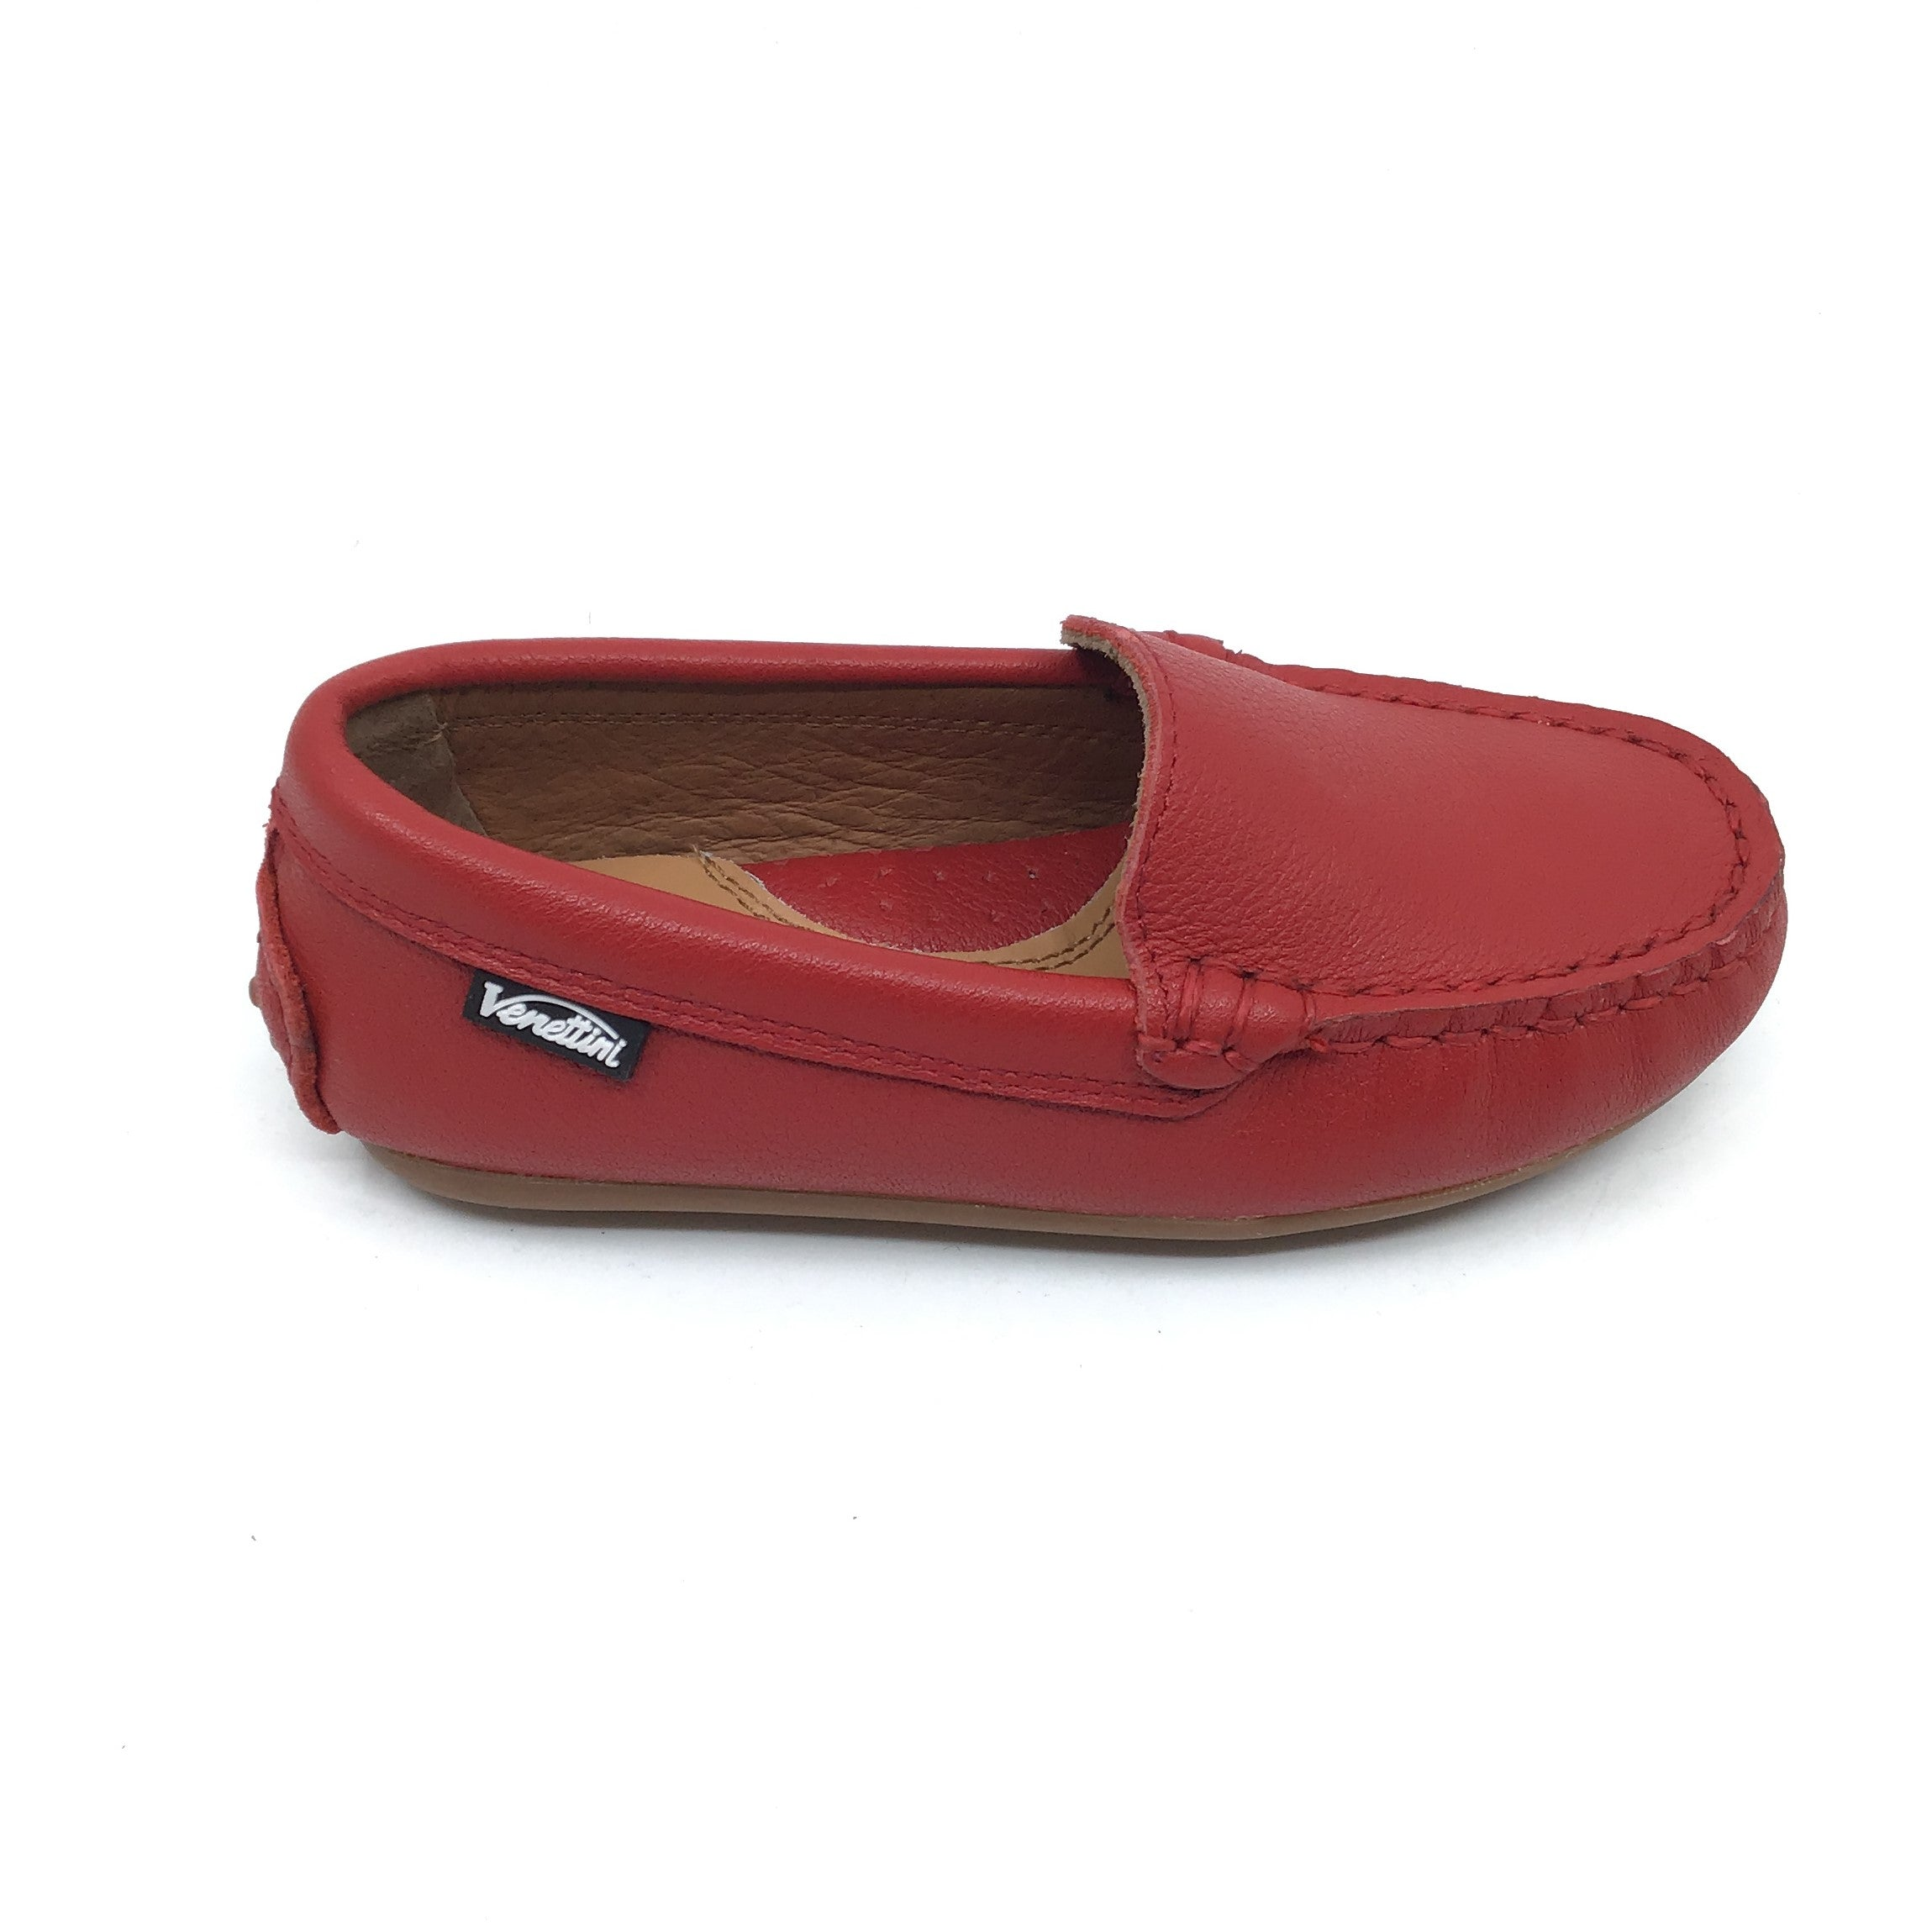 Venettini Red Moccassin